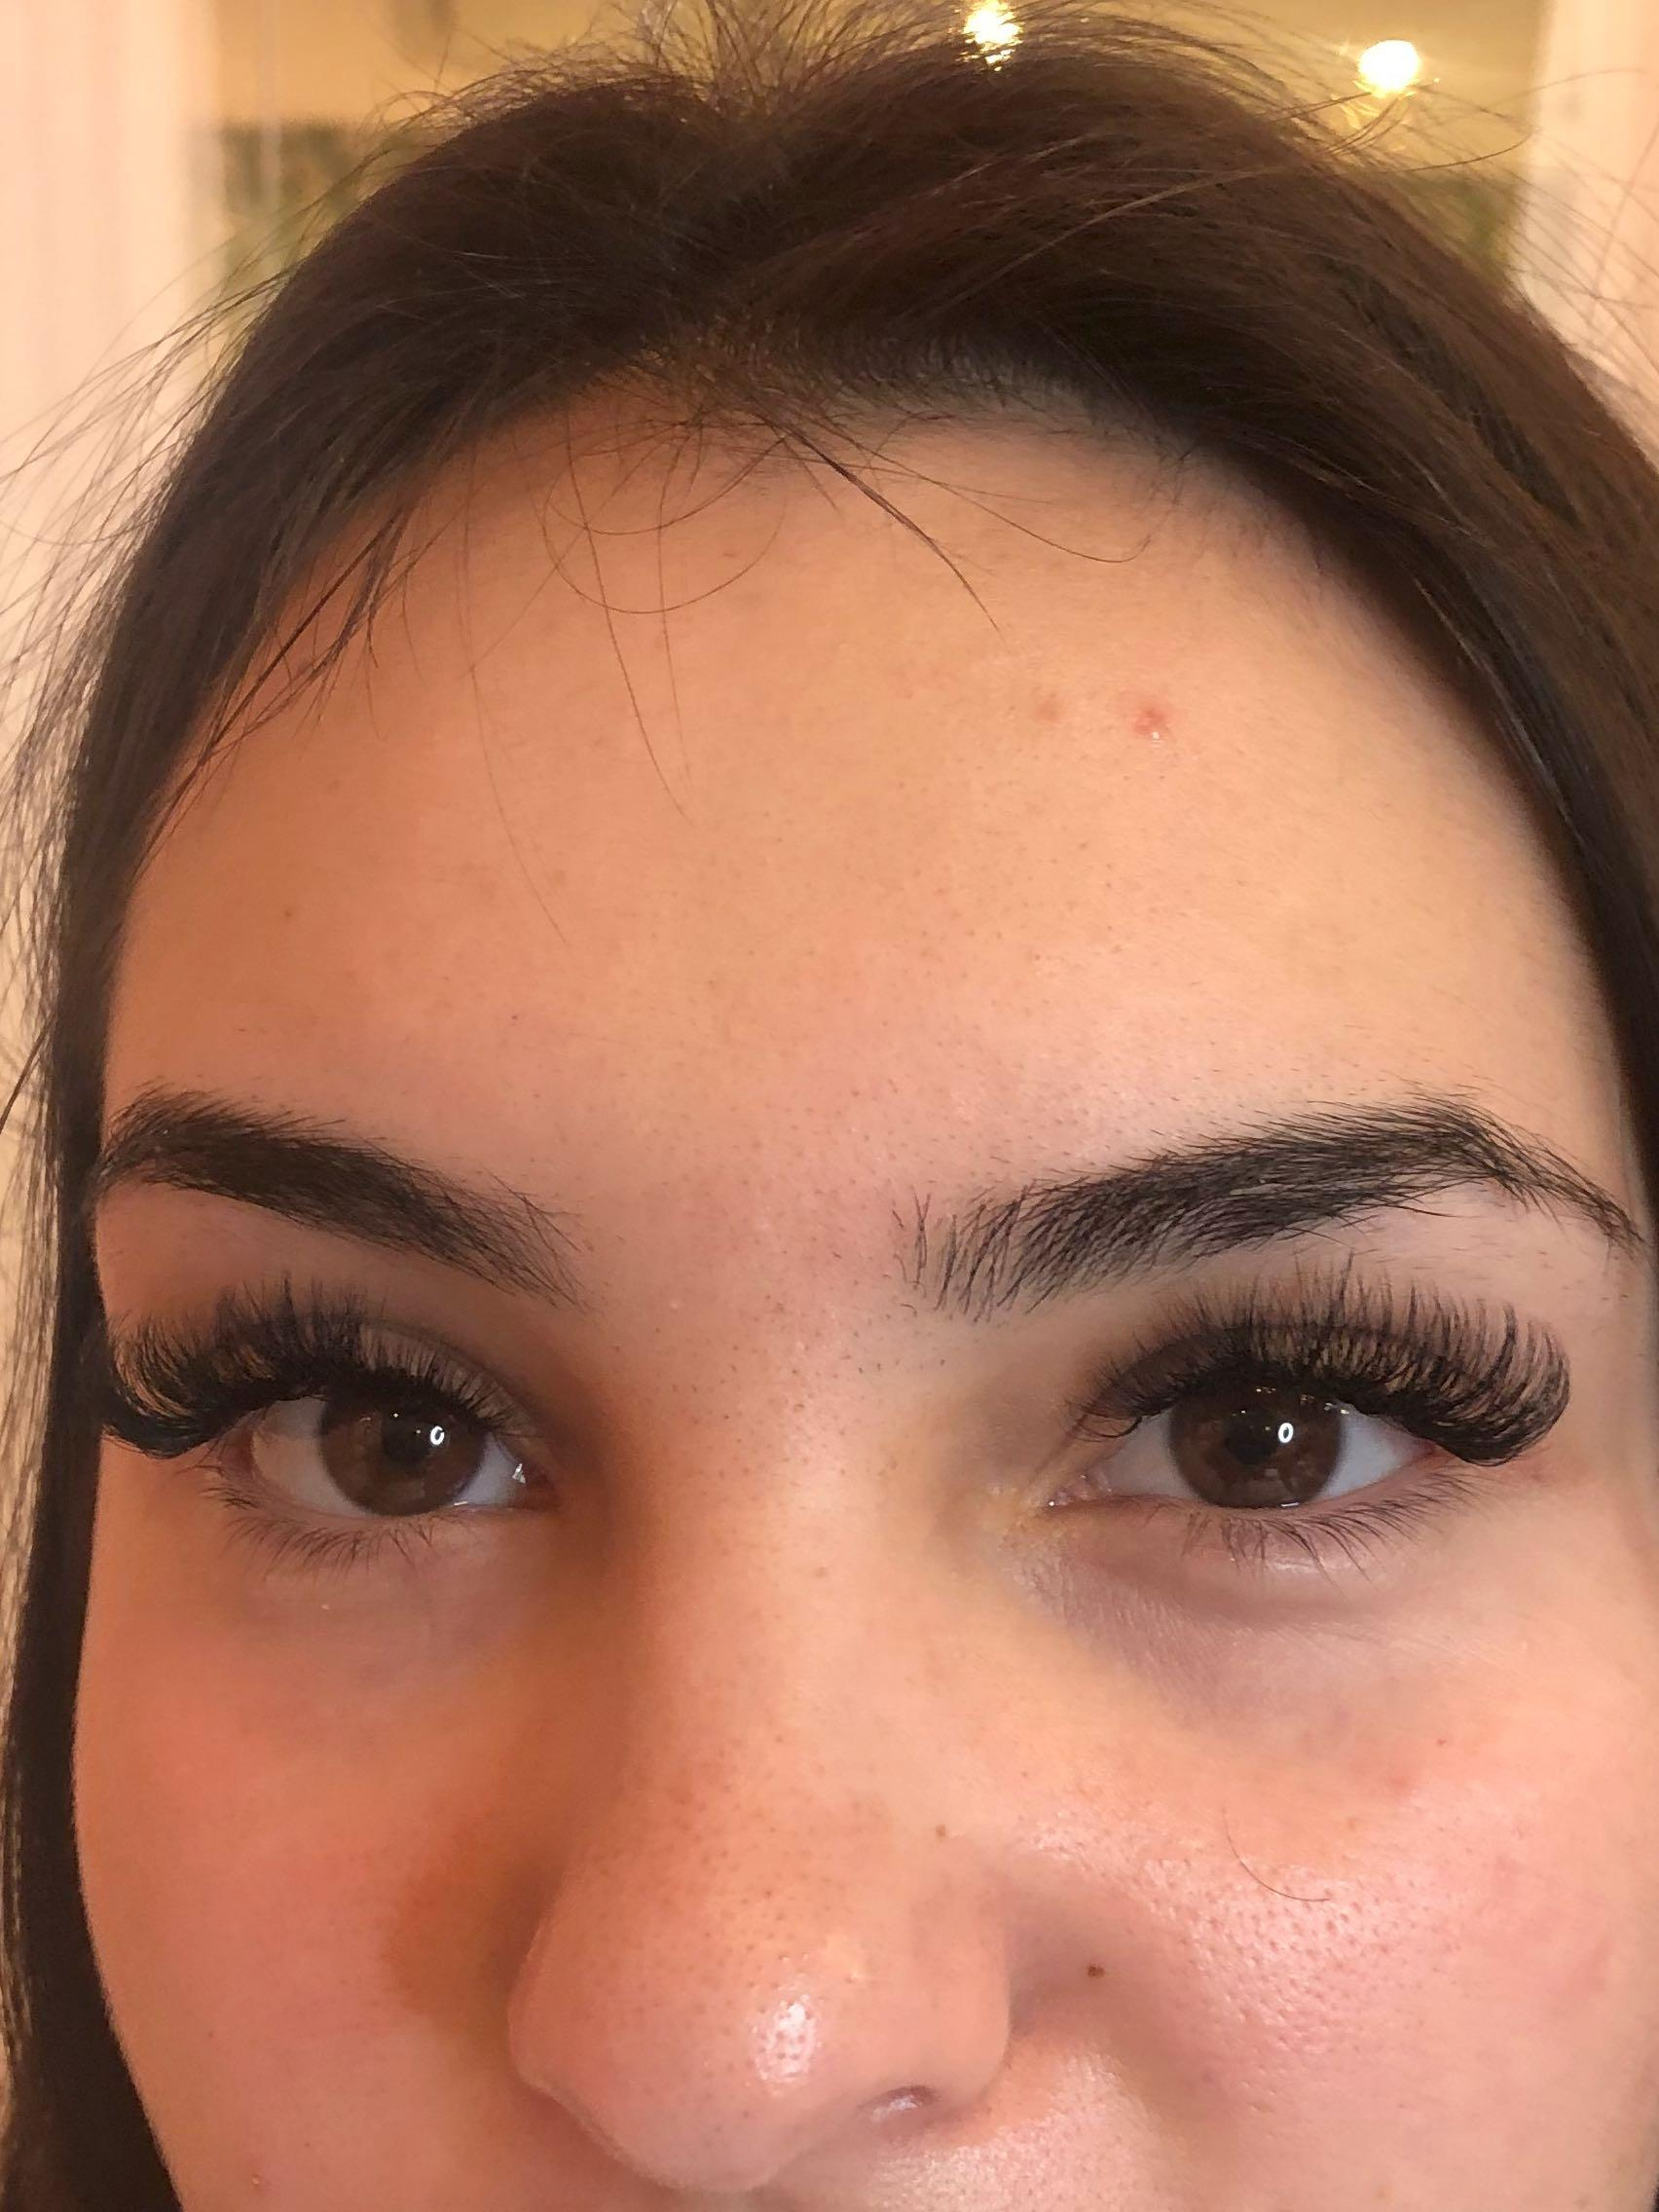 Volume lash extensions $95 Refill $55( promo 70 and refill $50)